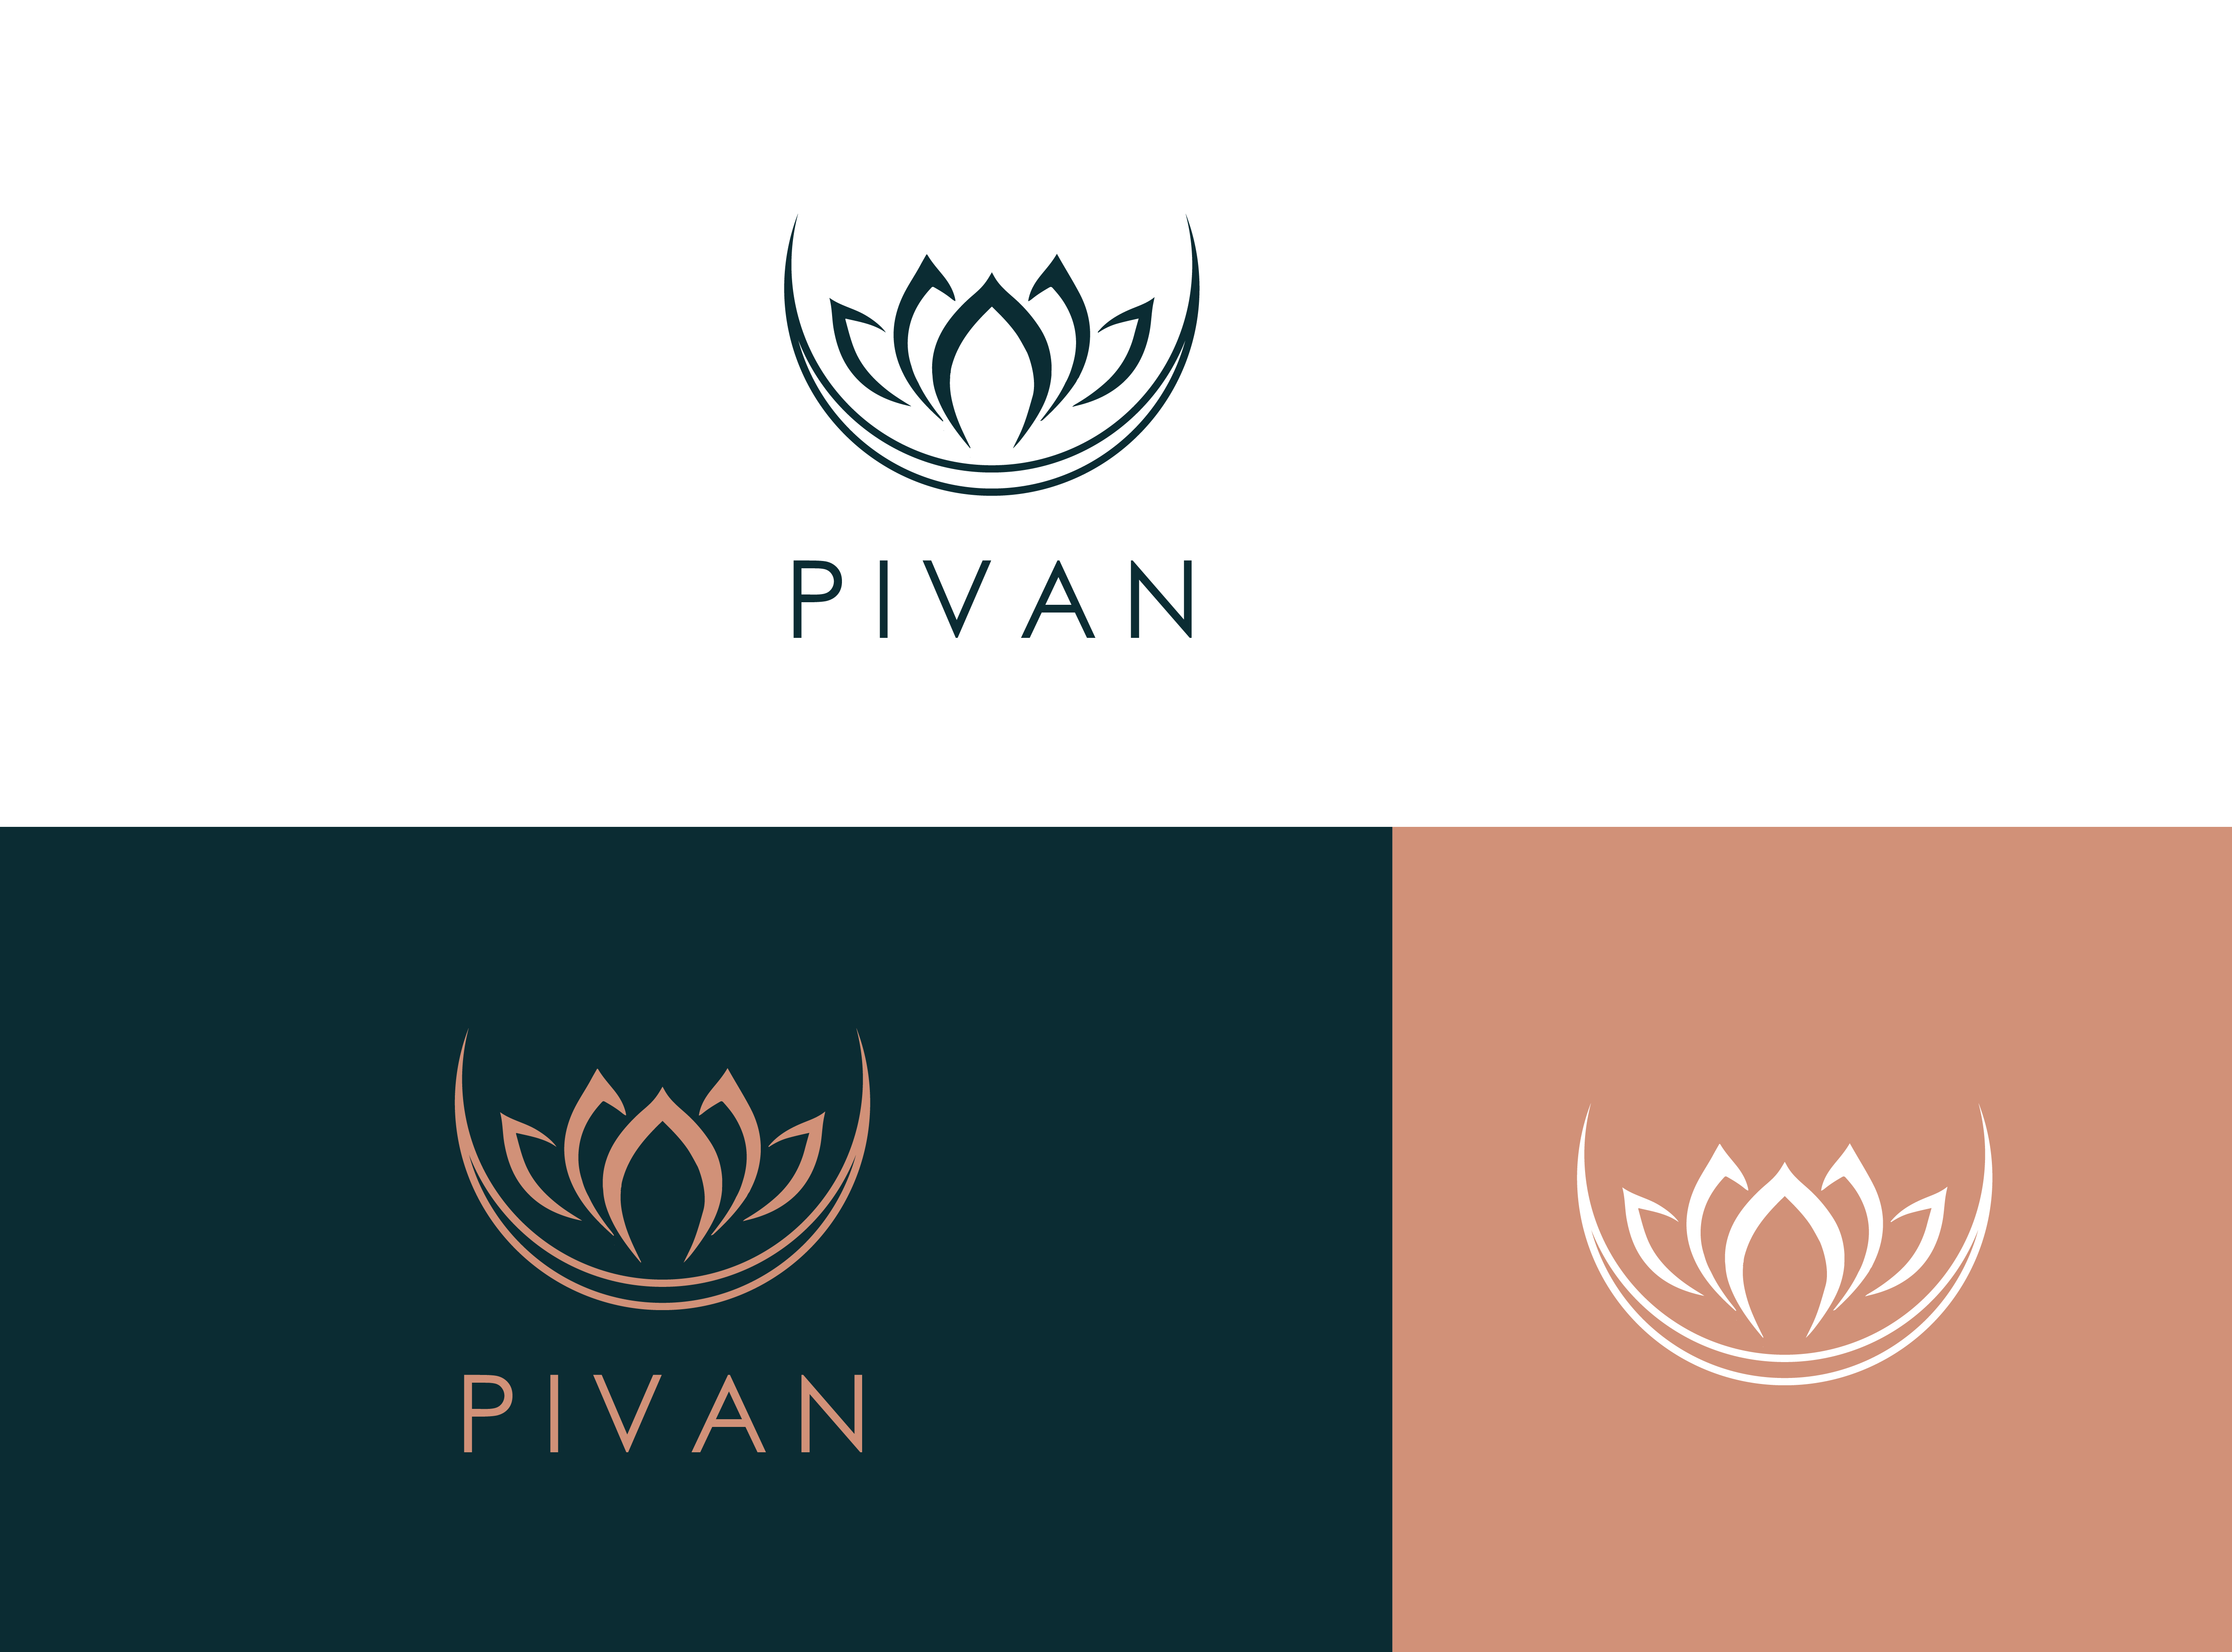 I will design professional logo design within 12 hours